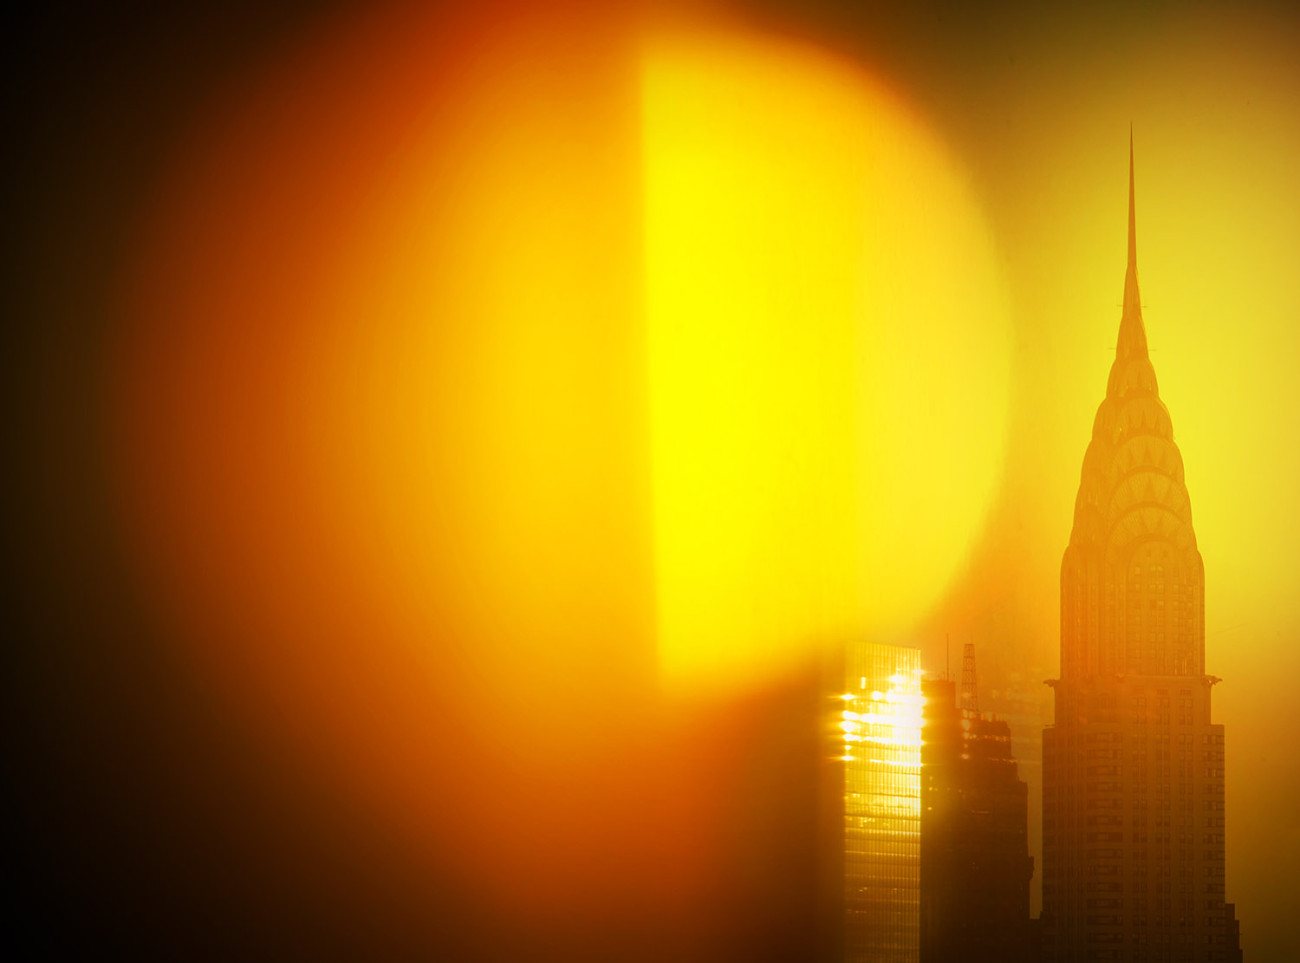 Chrysler Building sunrise, NY, 2016